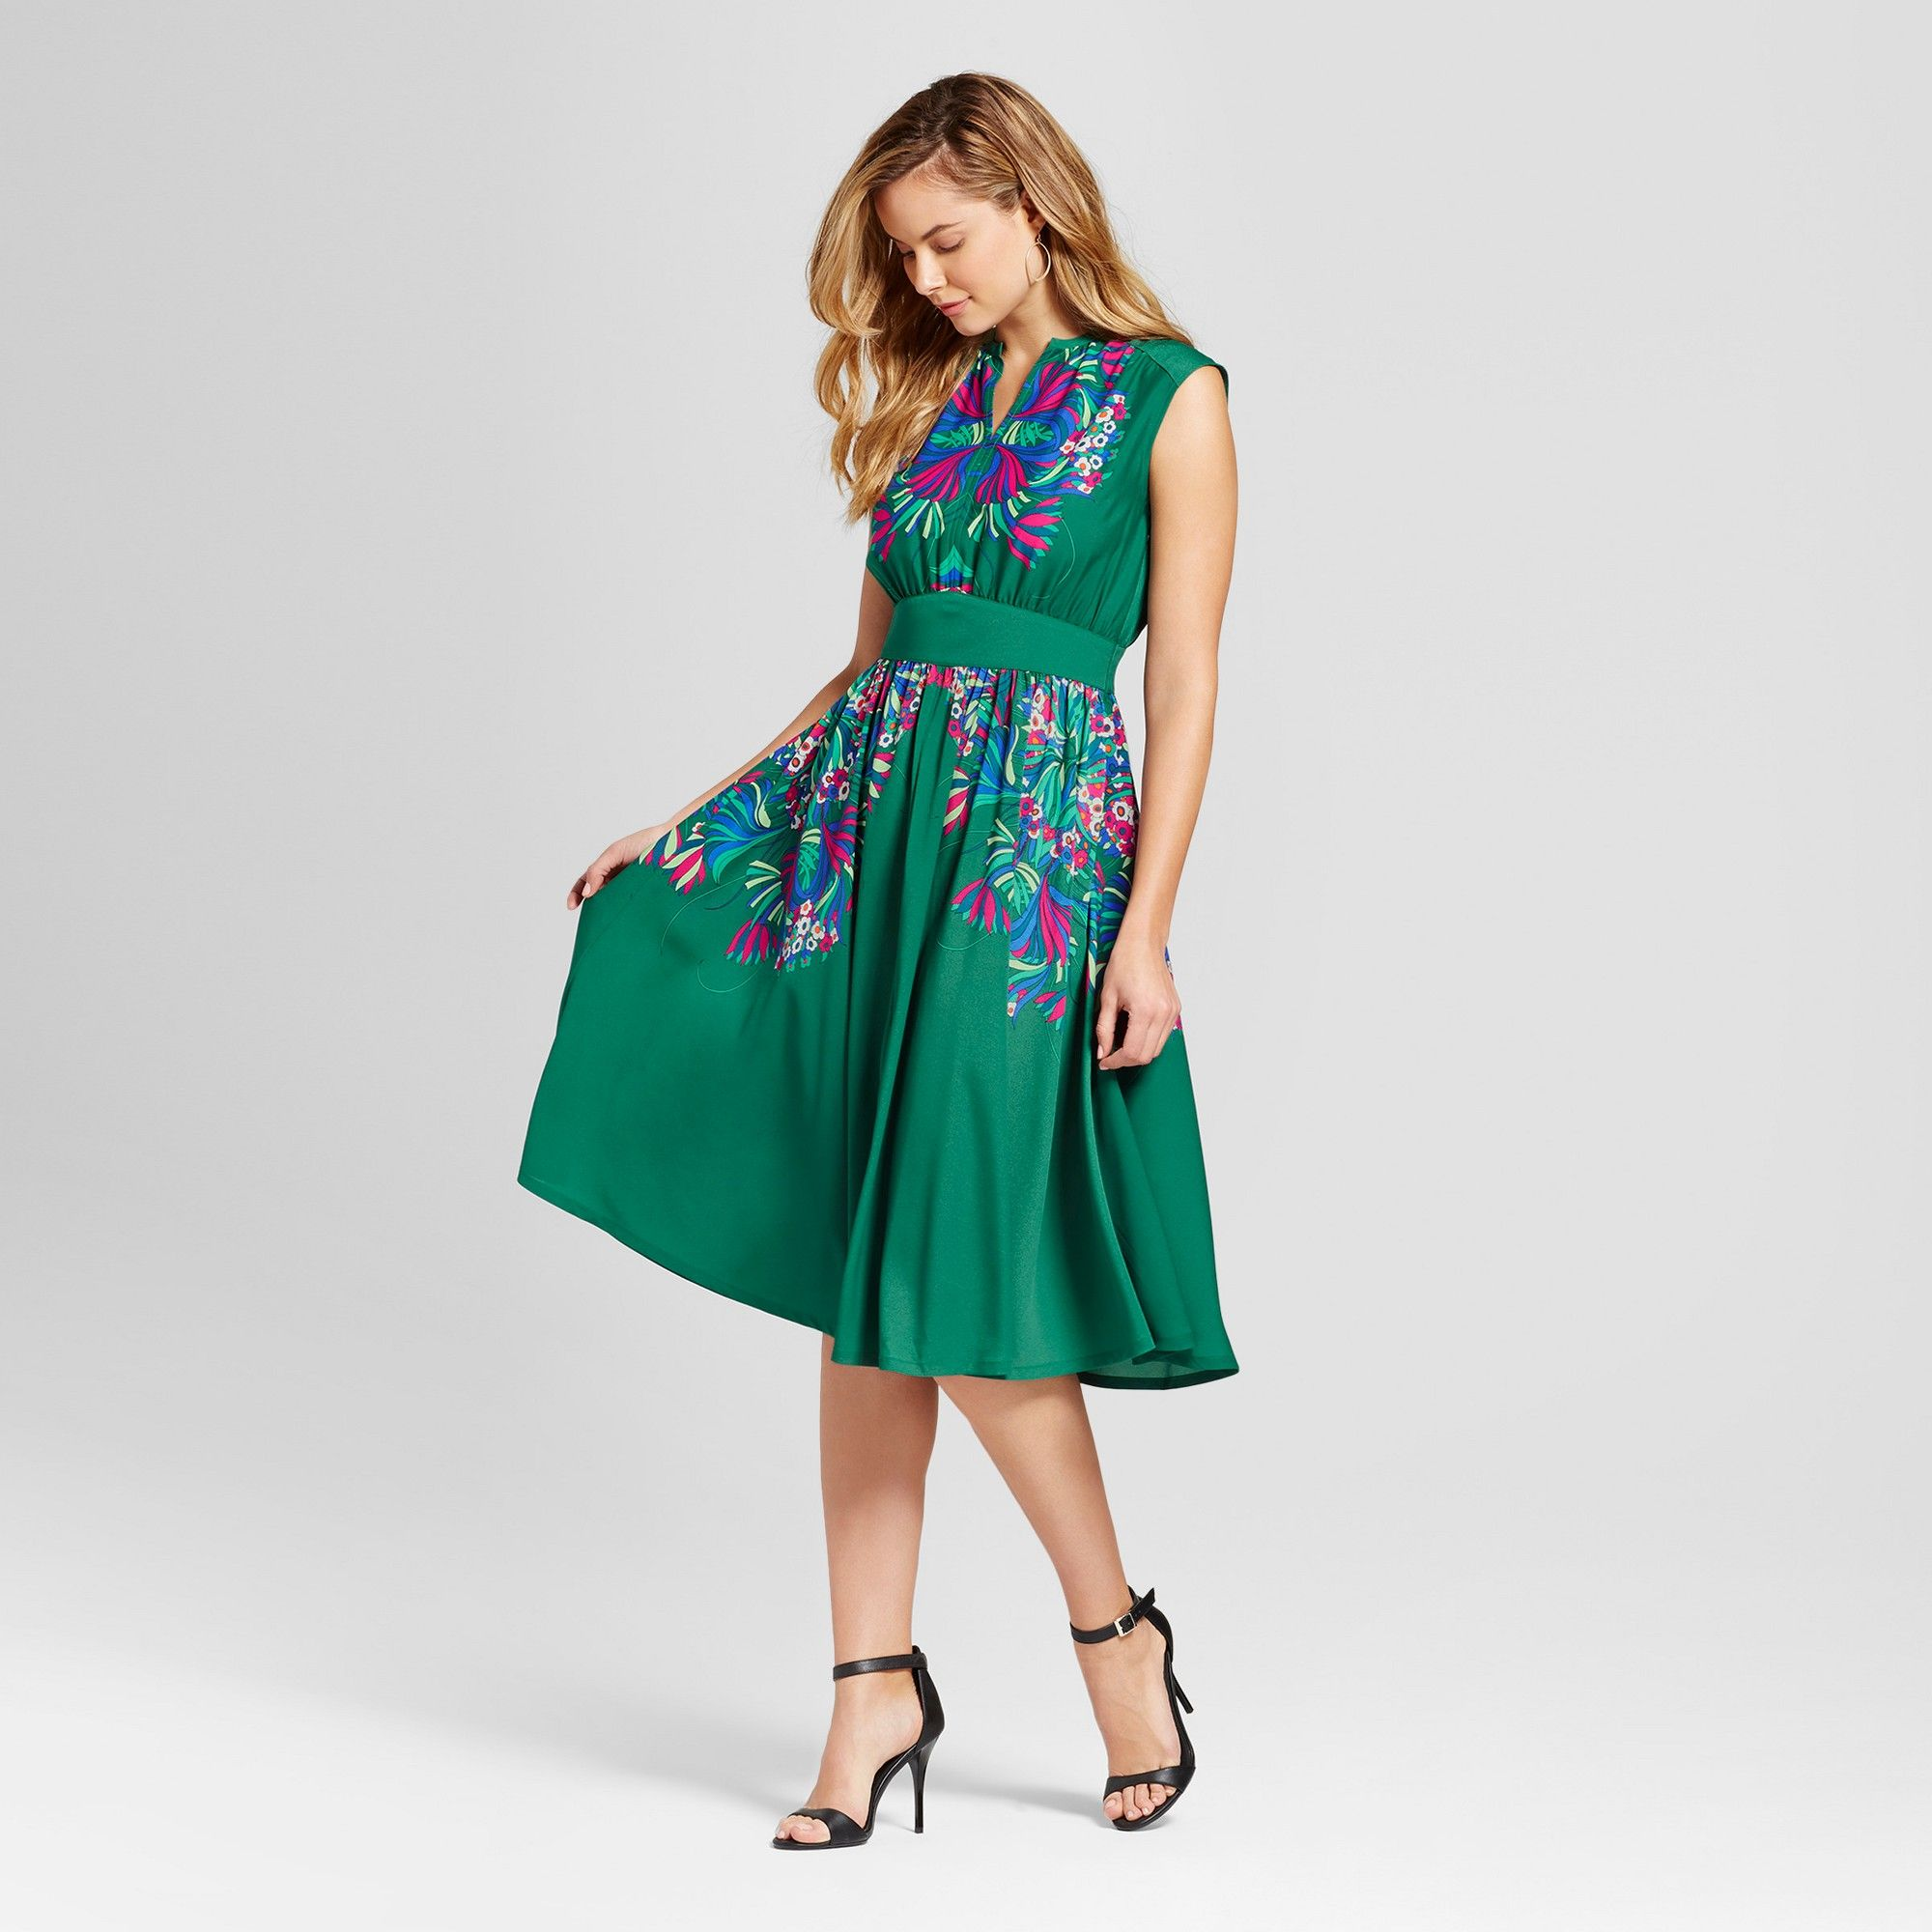 e065c485207 Women s Placed Floral Printed Midi Dress - Isani for Target - Green Combo S